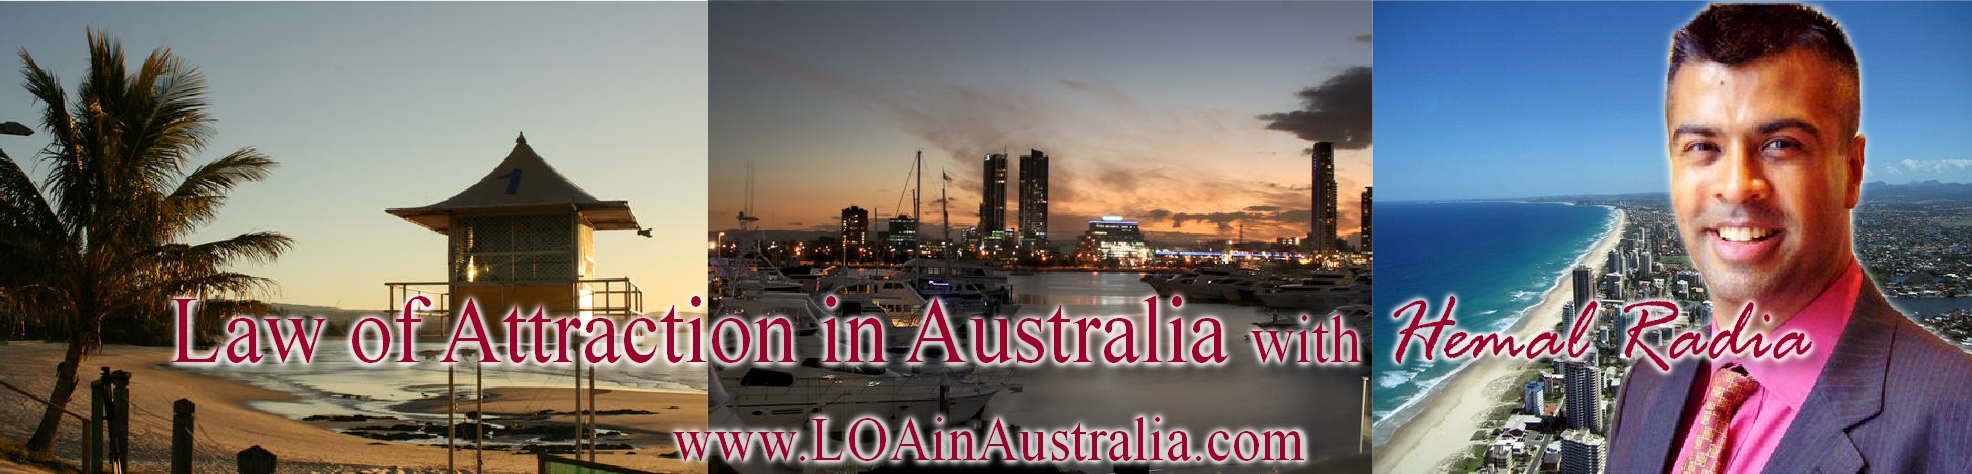 LOA in Australia horizontal pic2